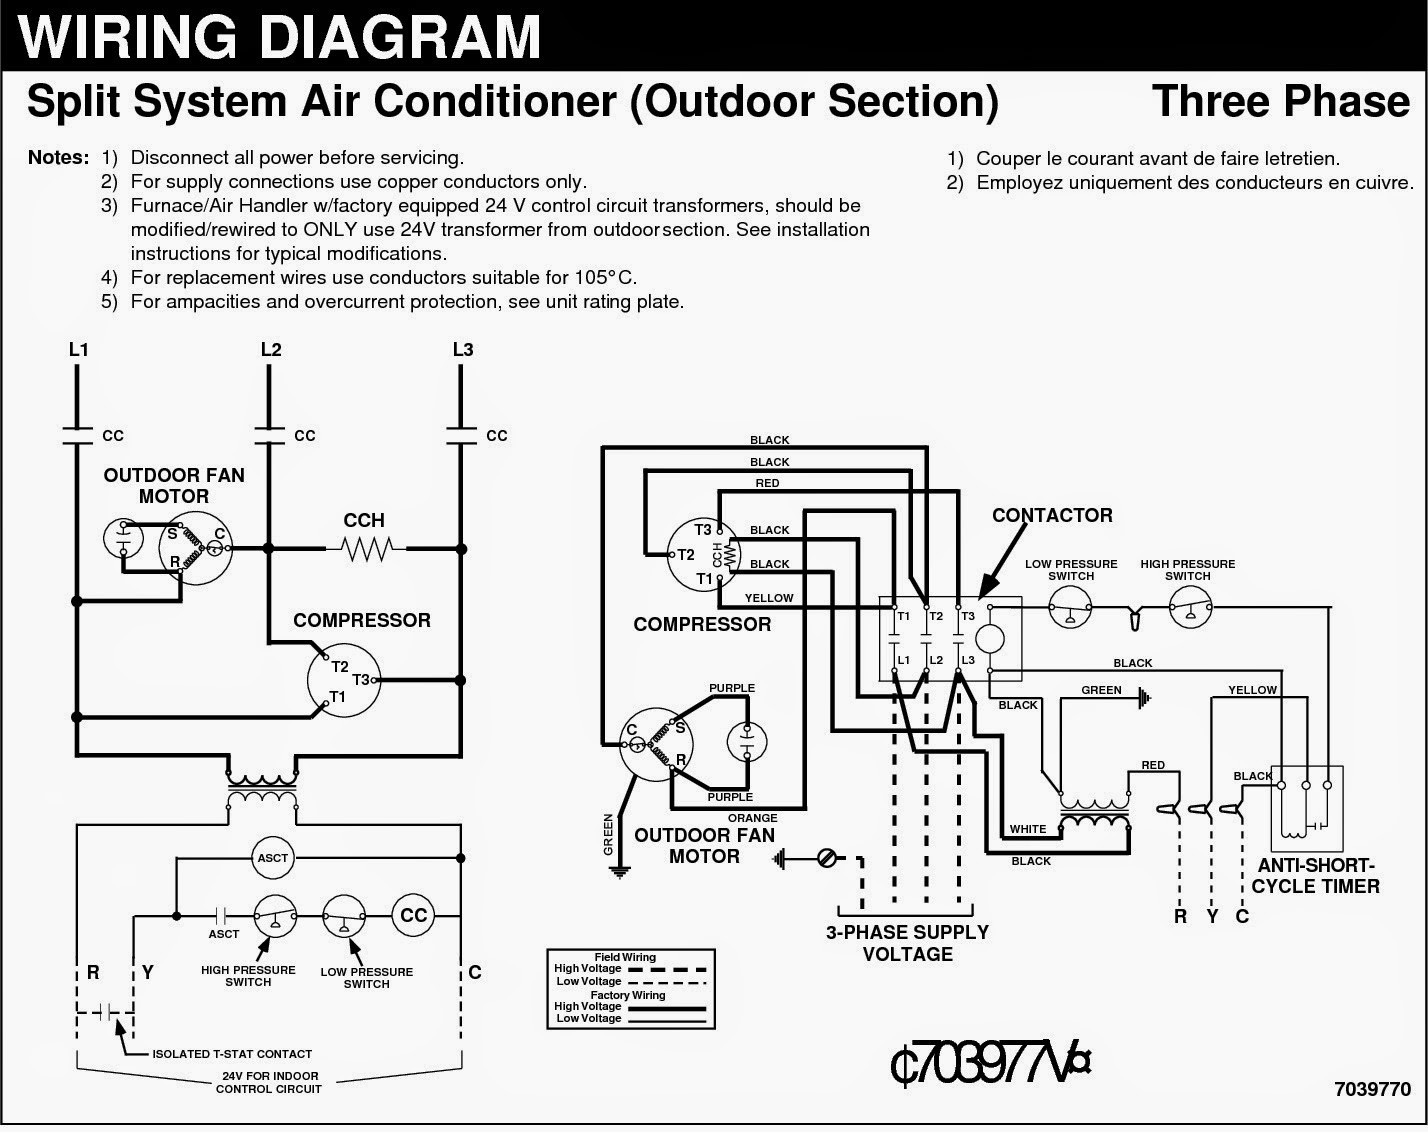 ac wire diagrams wiring diagram portal ac wiring schematic 5455 massey ferguson ac home wiring diagram [ 1428 x 1132 Pixel ]